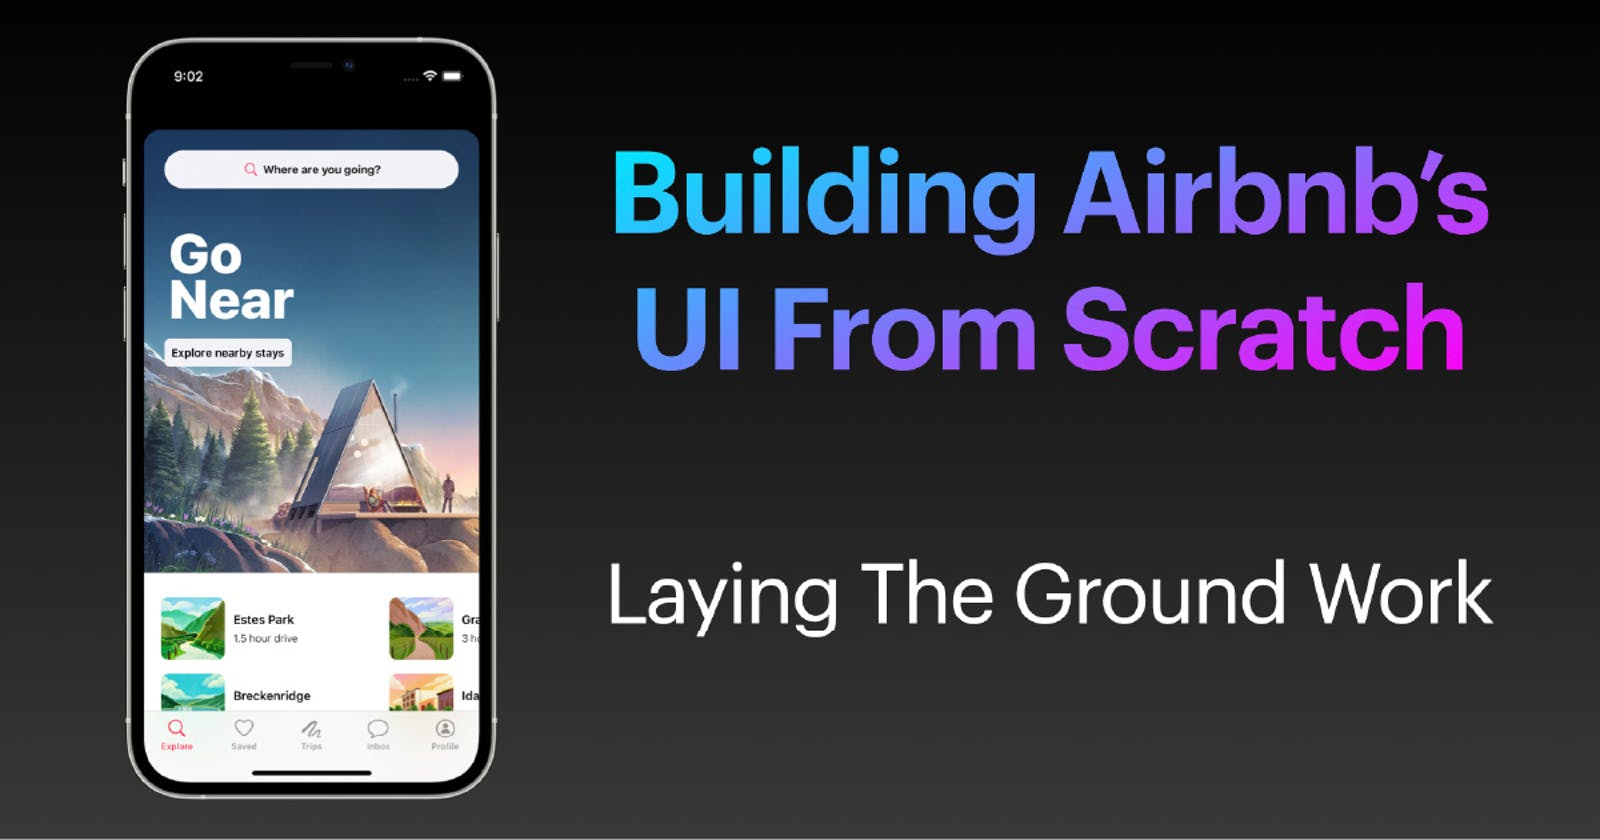 Building Airbnb's UI From Scratch - Part 1